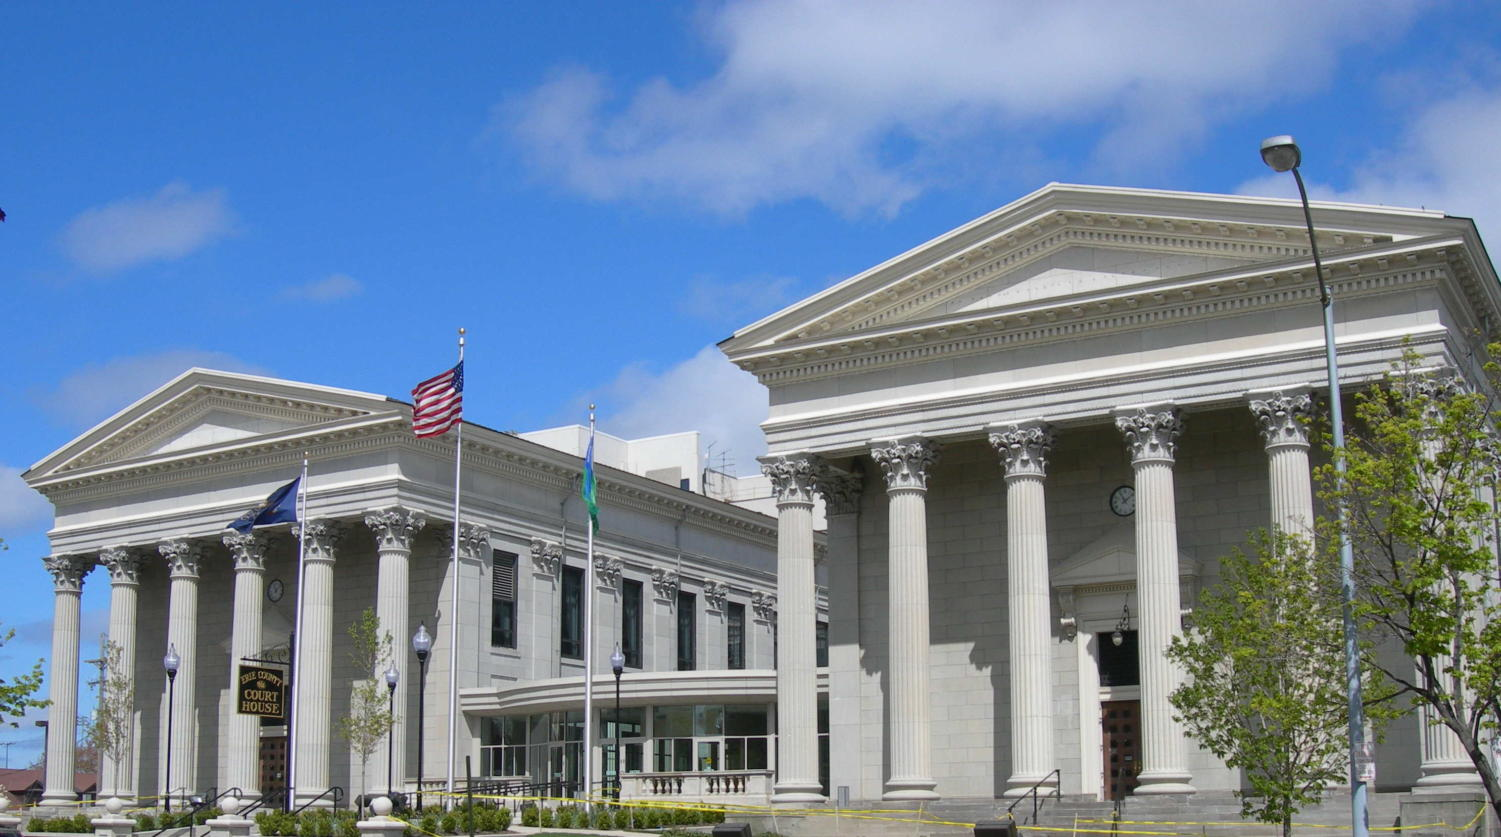 The Erie County Courthouse